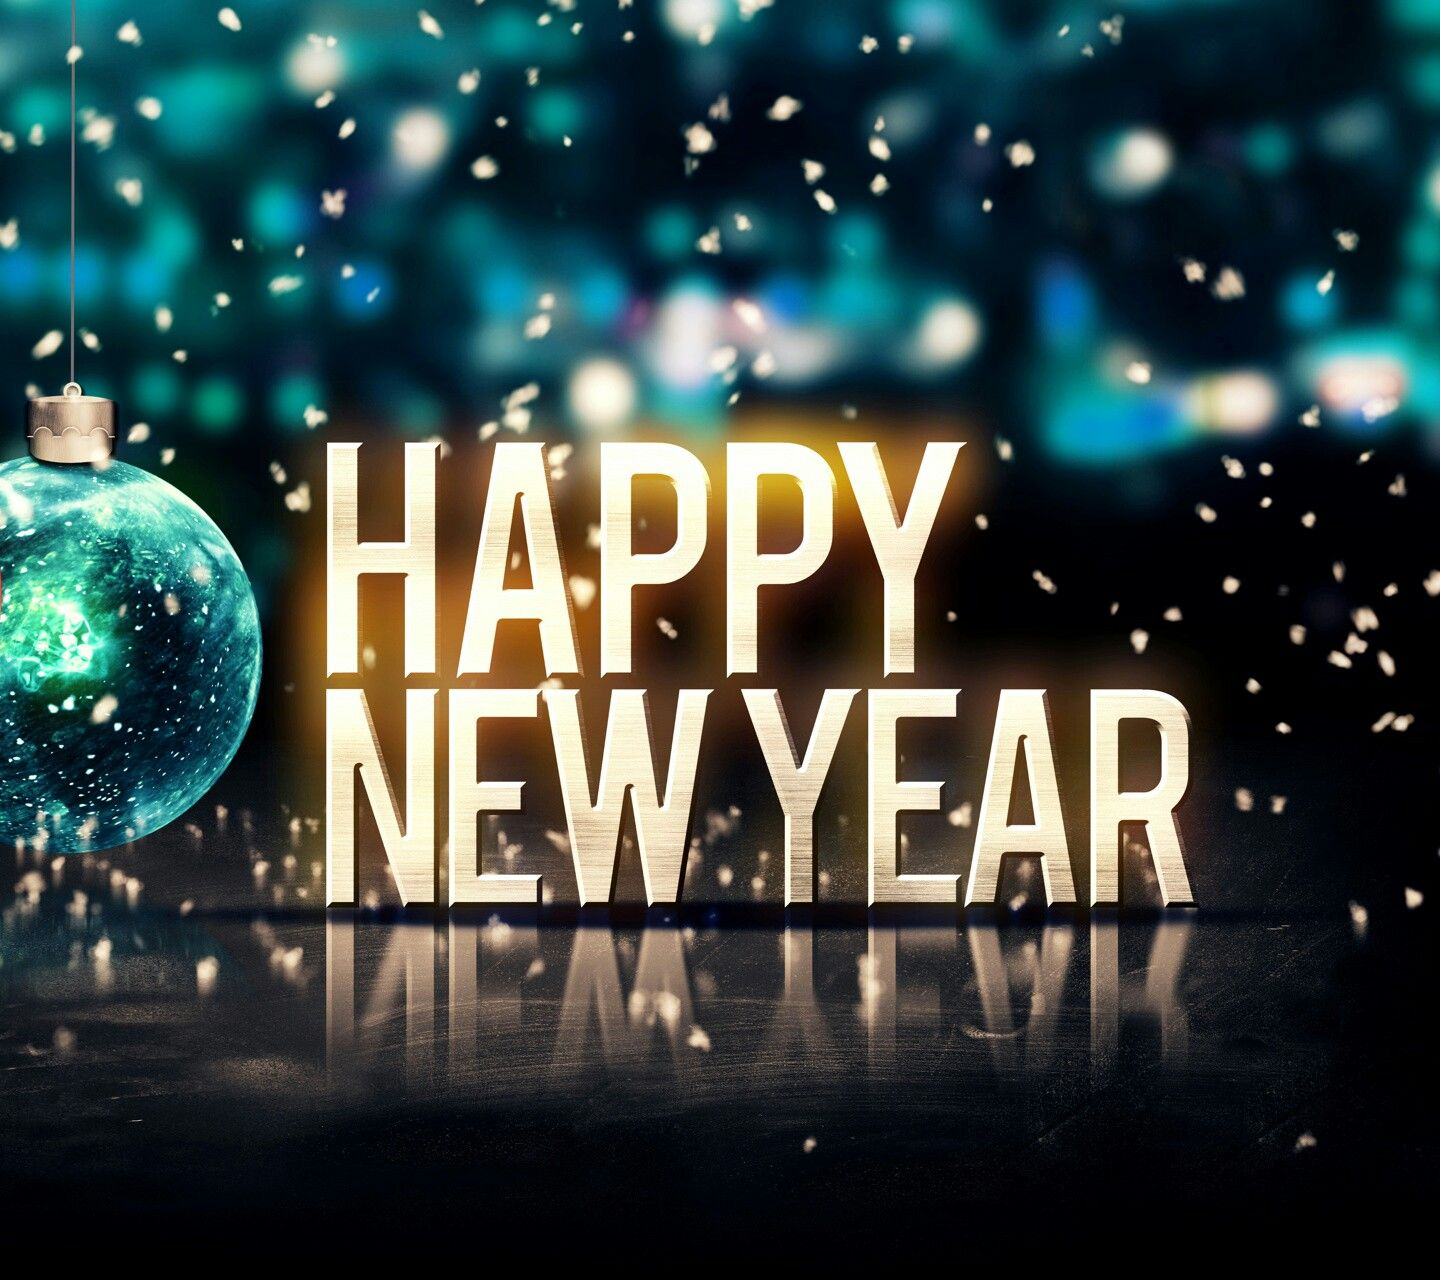 Happy New Year Wallpapers 2013 HD Pictures 2013